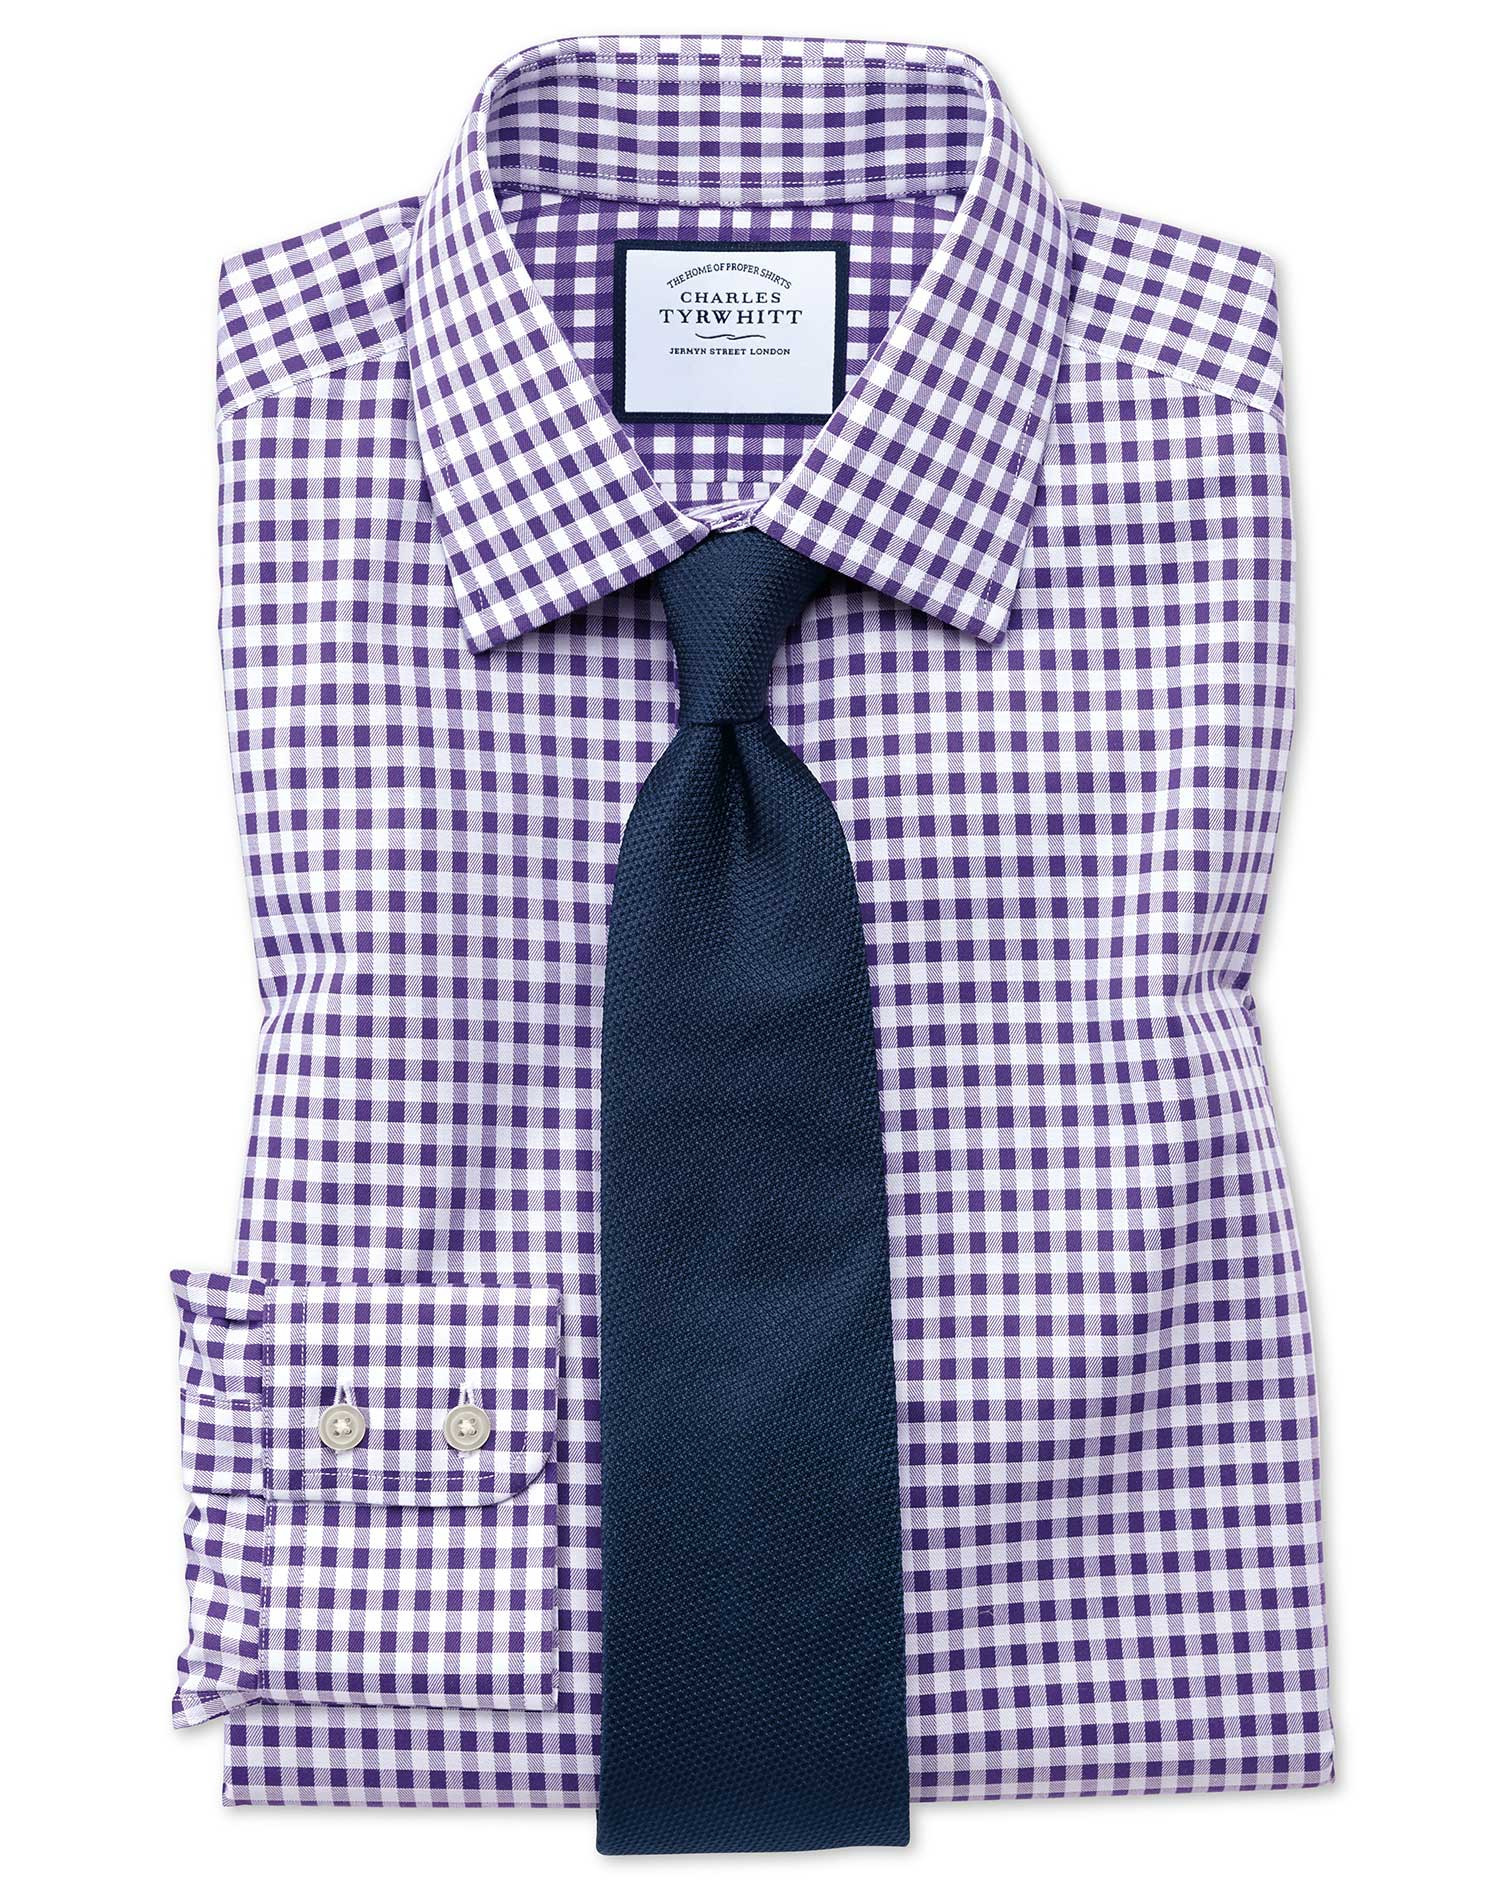 Slim Fit Non-Iron Gingham Purple Cotton Formal Shirt Single Cuff Size 17.5/35 by Charles Tyrwhitt